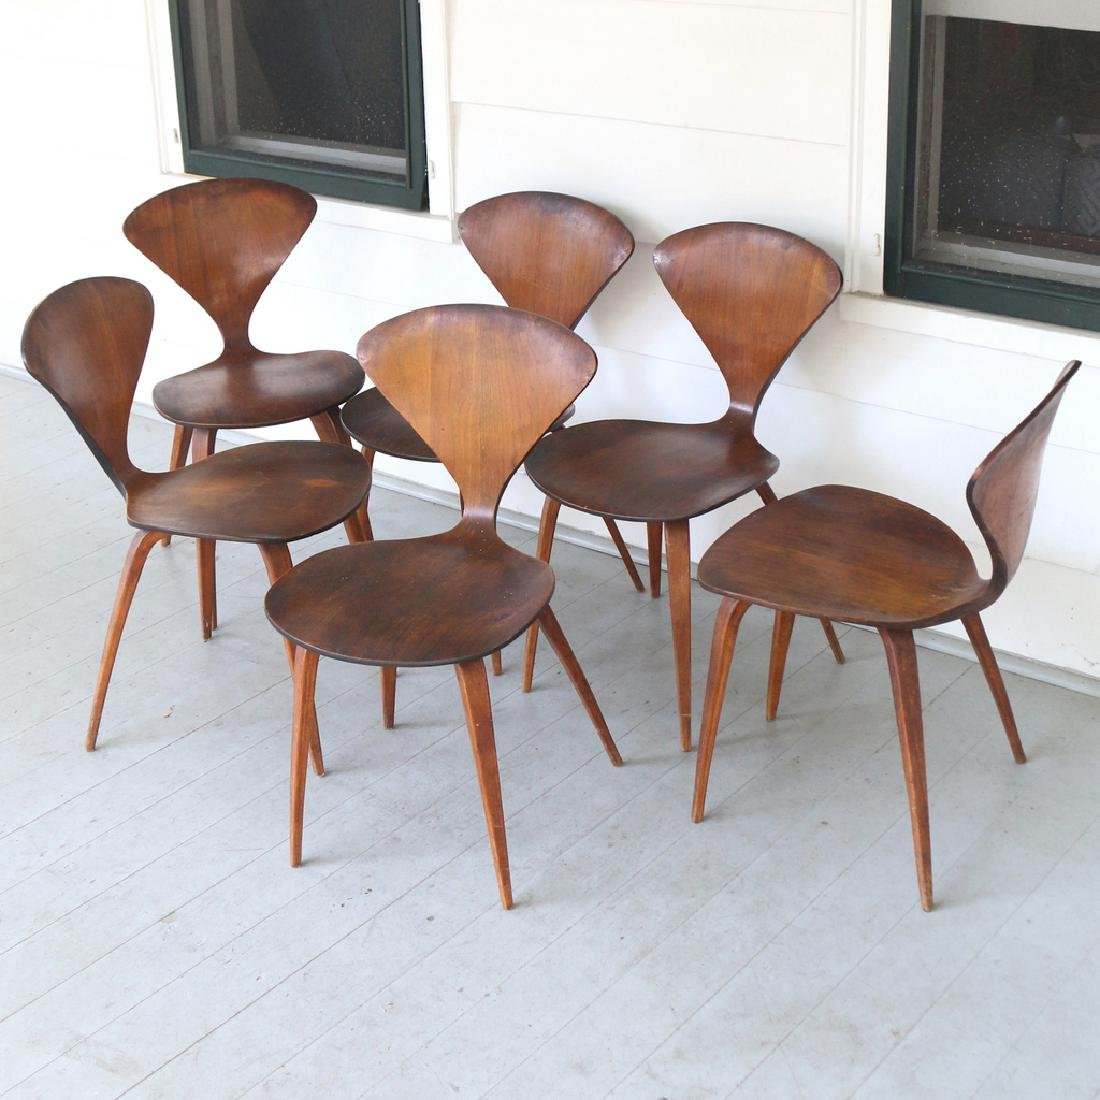 6pc norman cherner plycraft side chairs